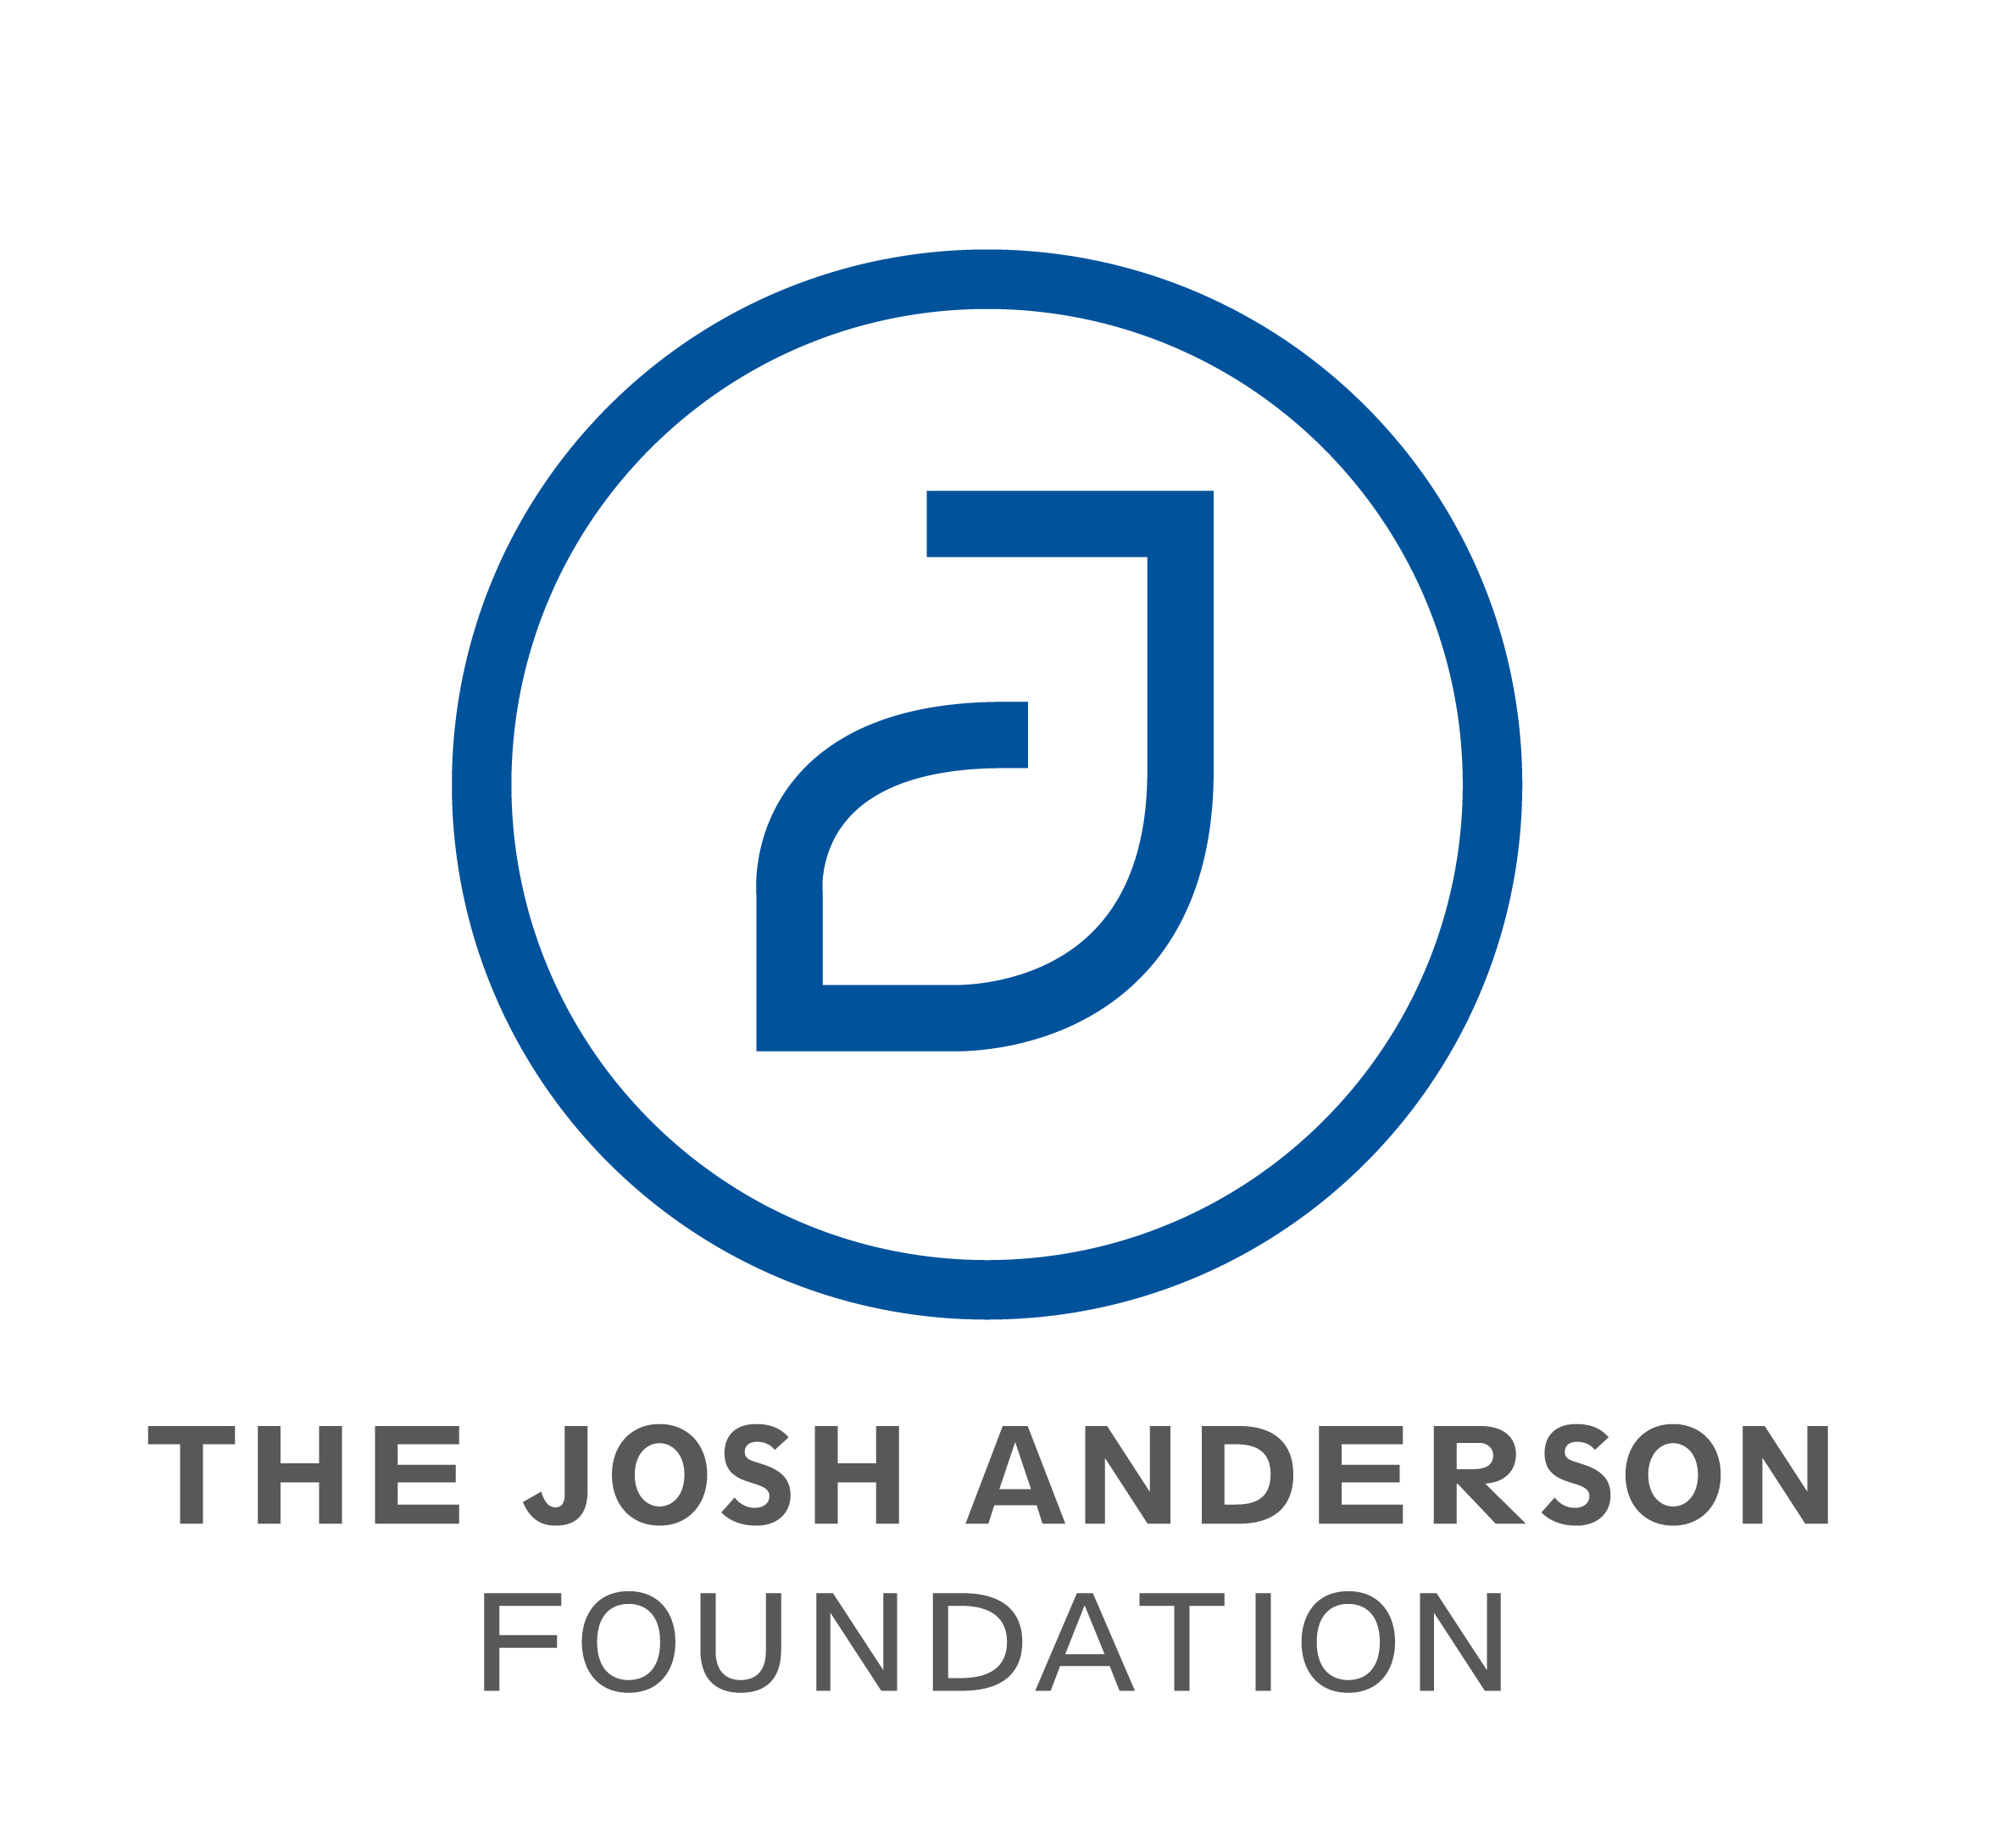 Josh Anderson Foundation (JAF) and Deepak Chopra